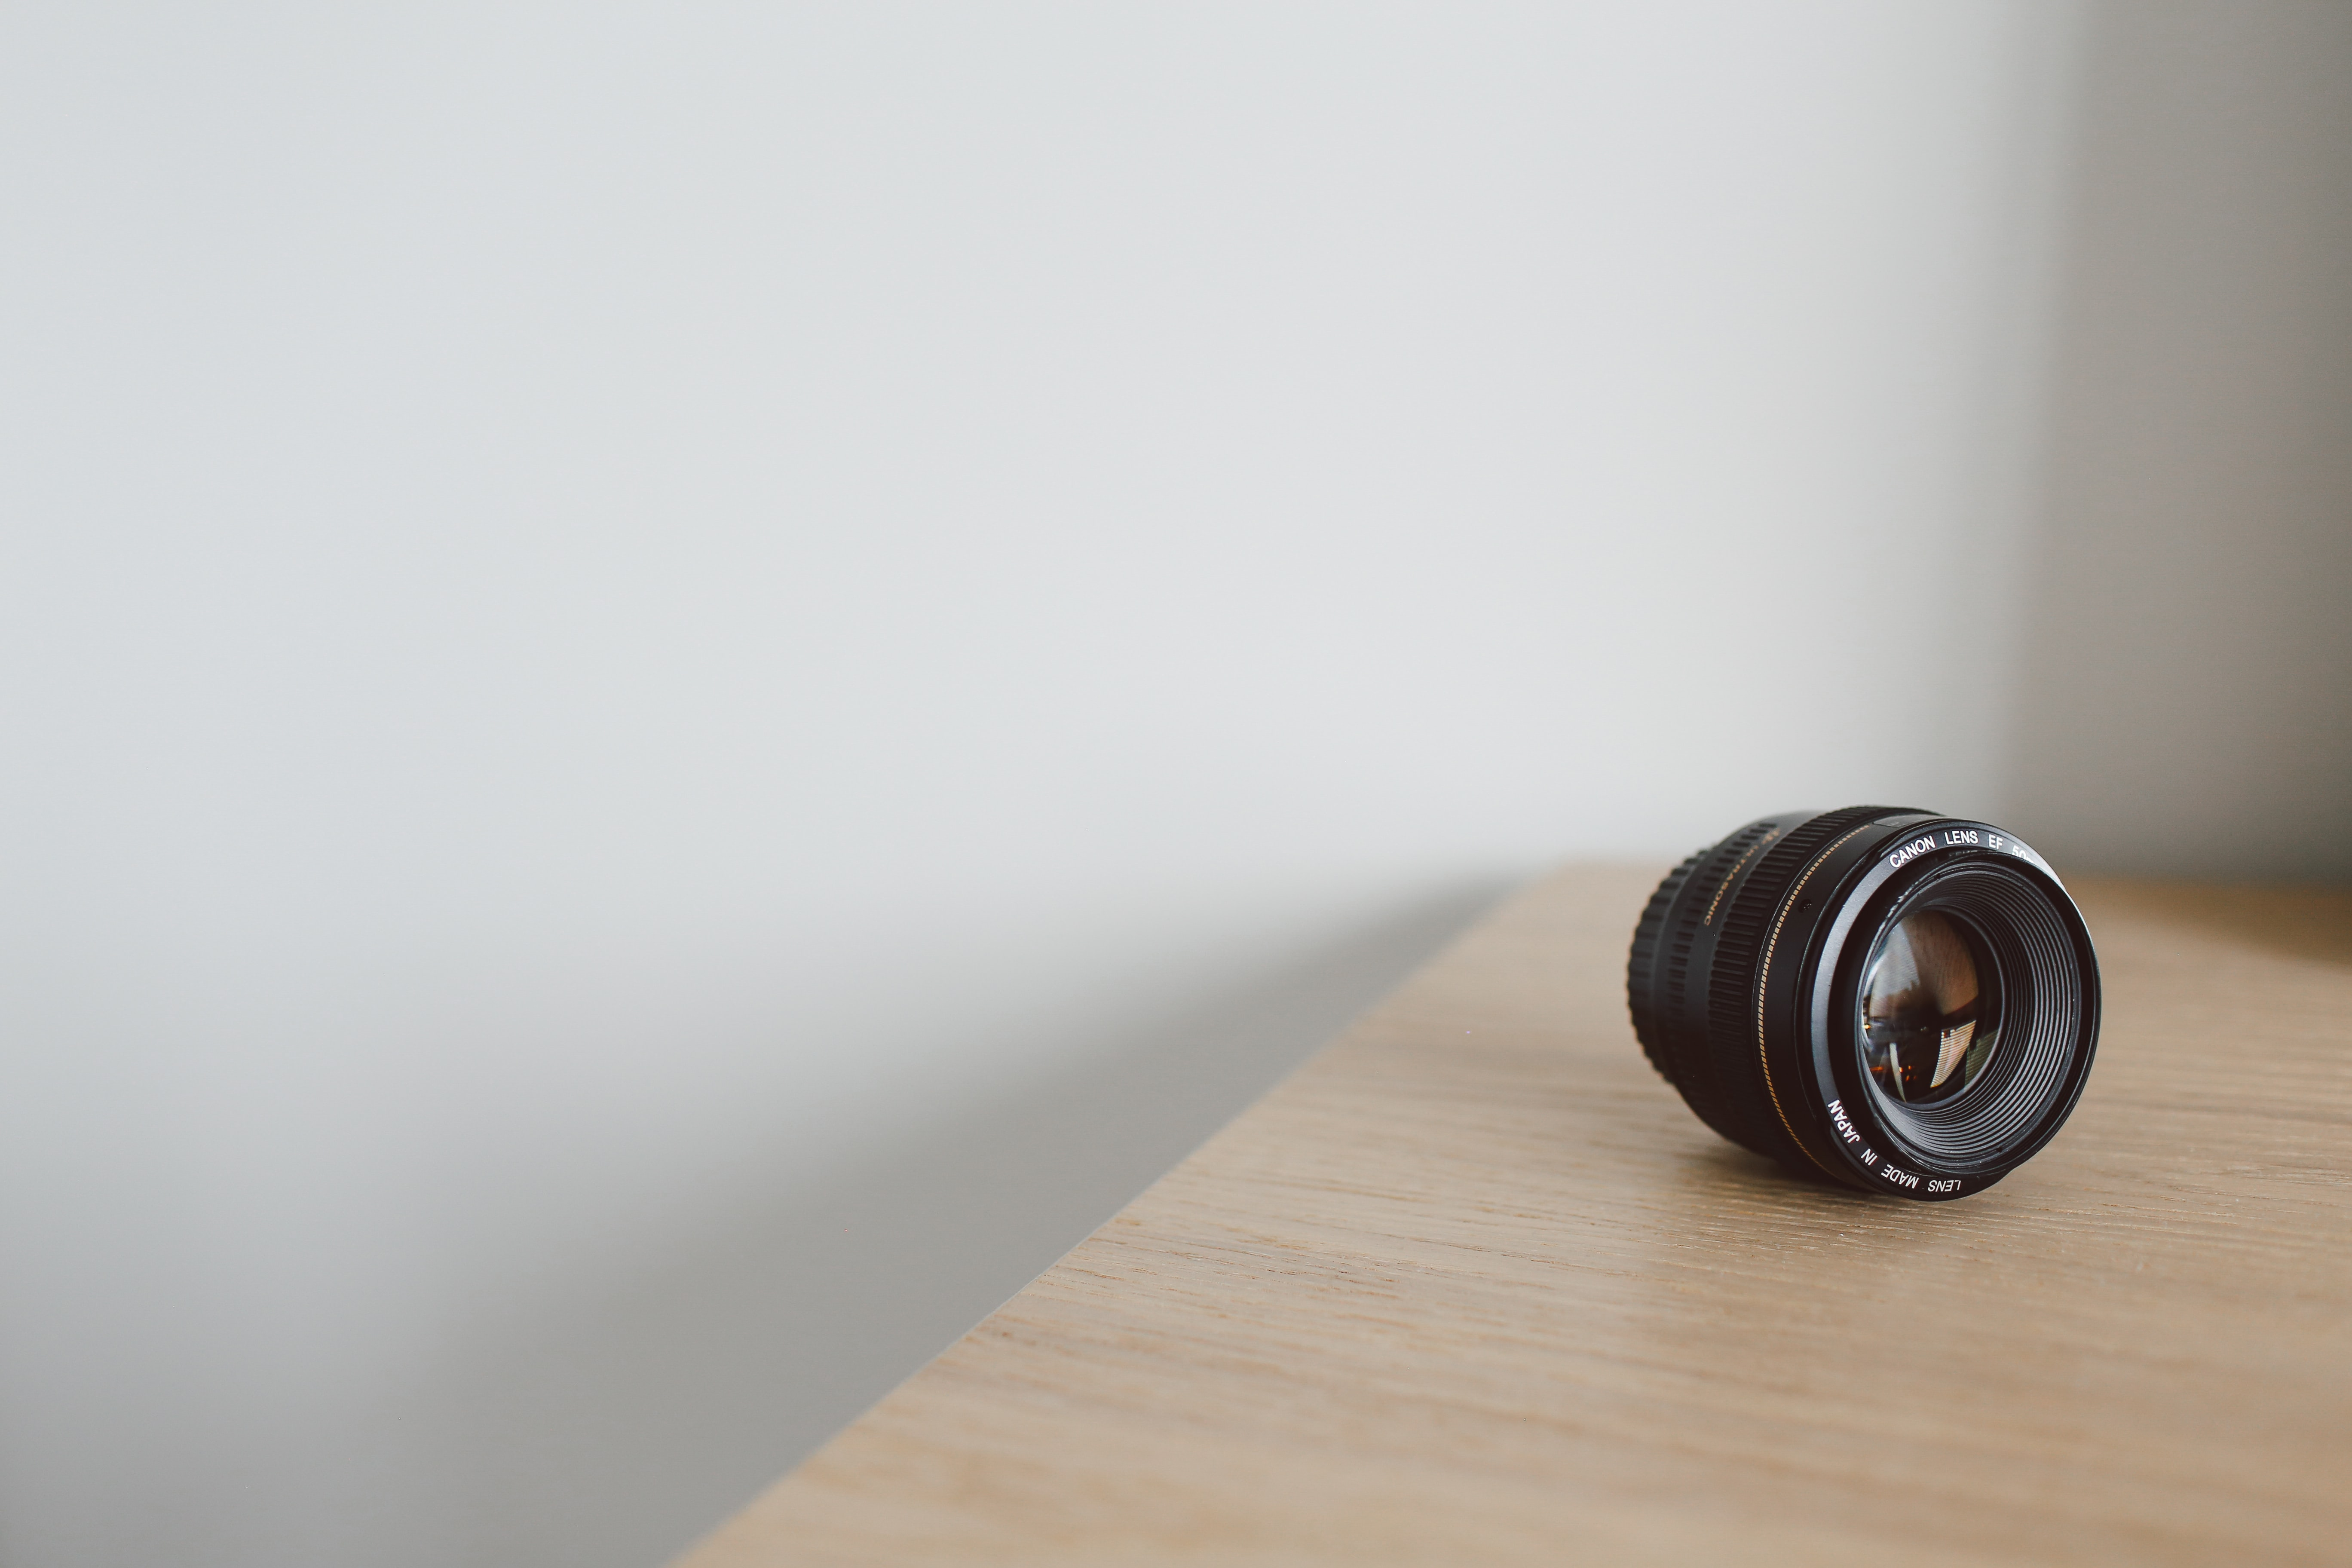 A Canon camera lens on a wooden surface near a white wall